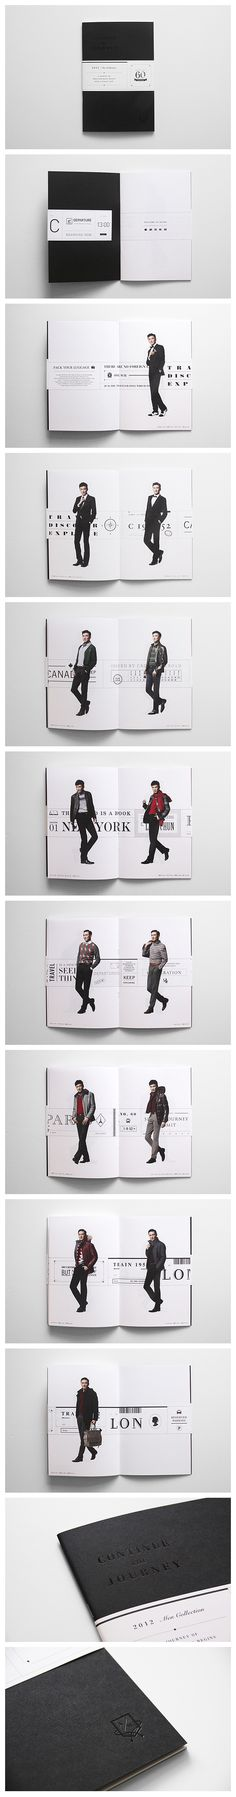 "CROCODILE AW12/12 CATALOG Base on the theme ""Urban Traveler"", we have designed the catalog for Crocodile AW12/12 collection. http://www.blow.hk"